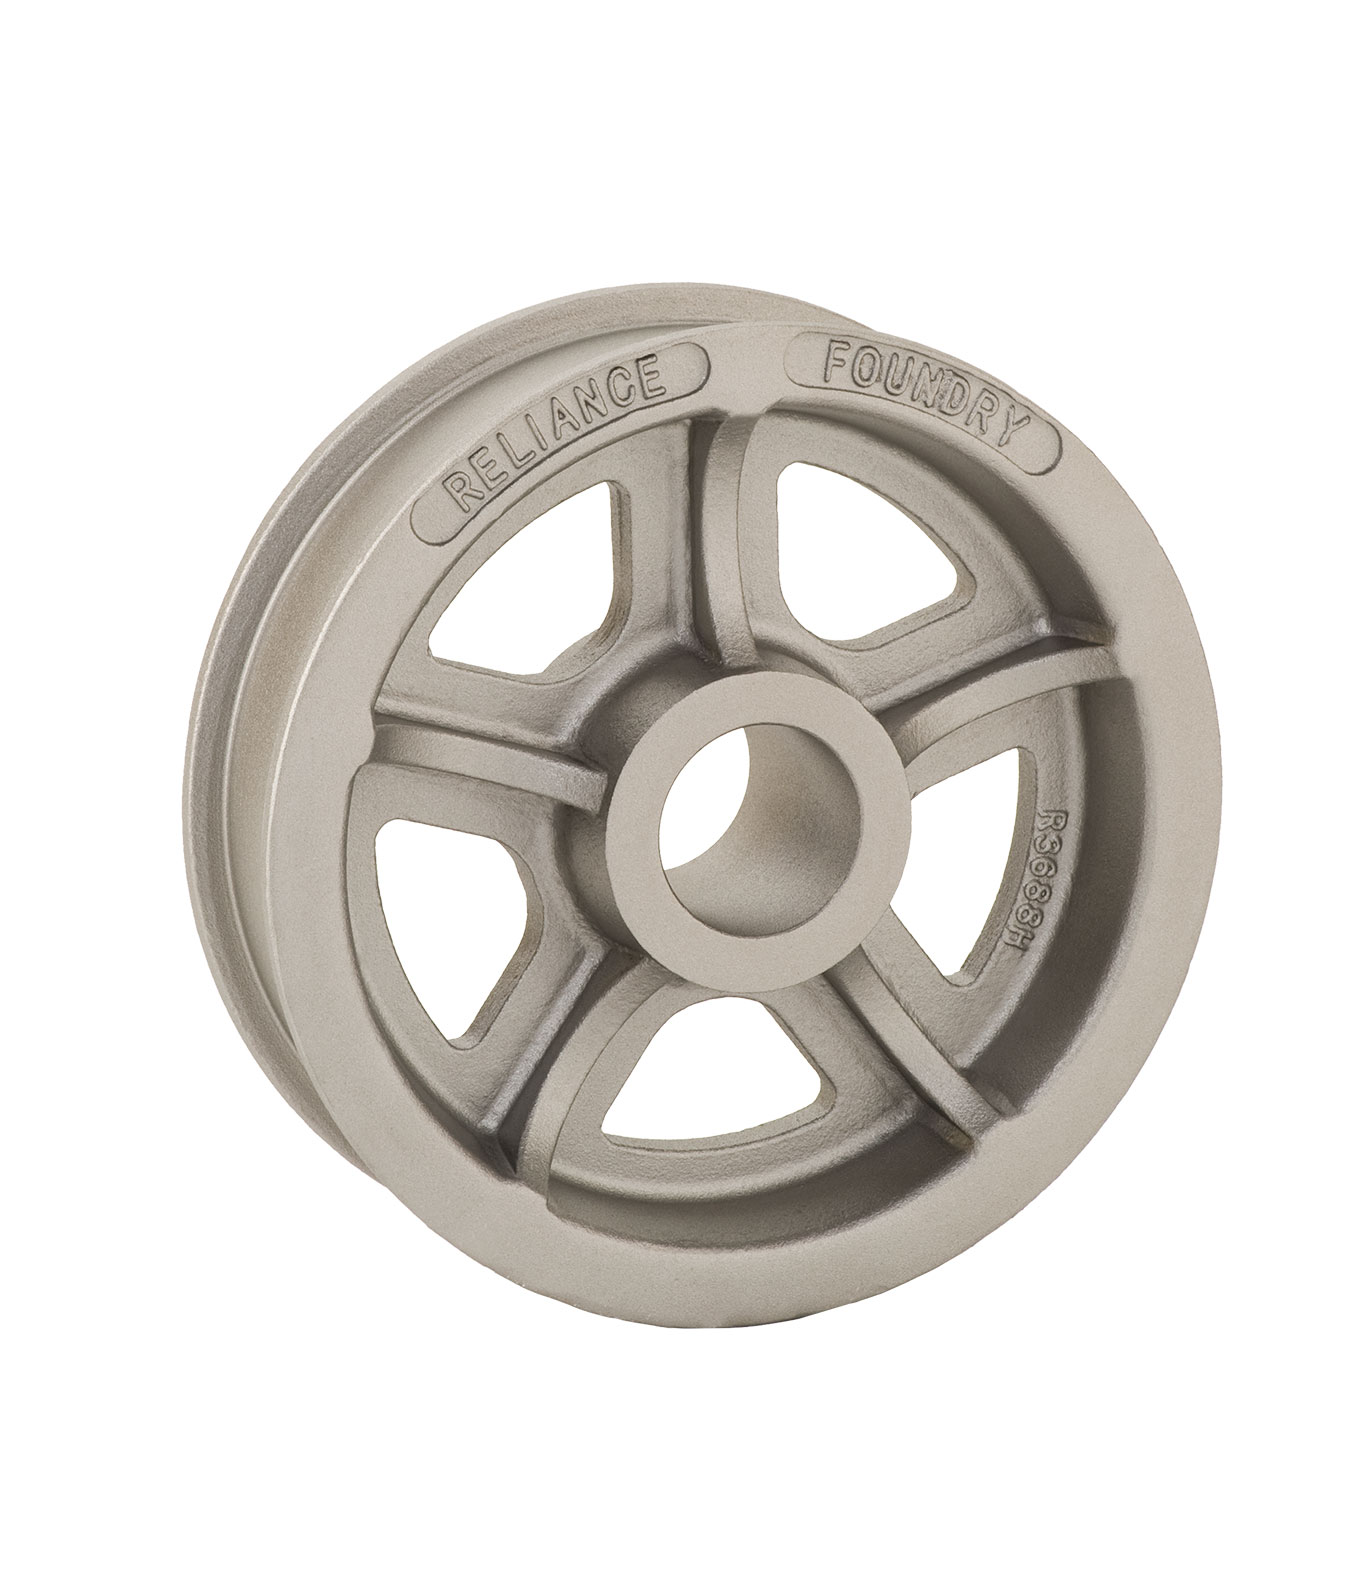 R-3688-H Double Flanged Wheel